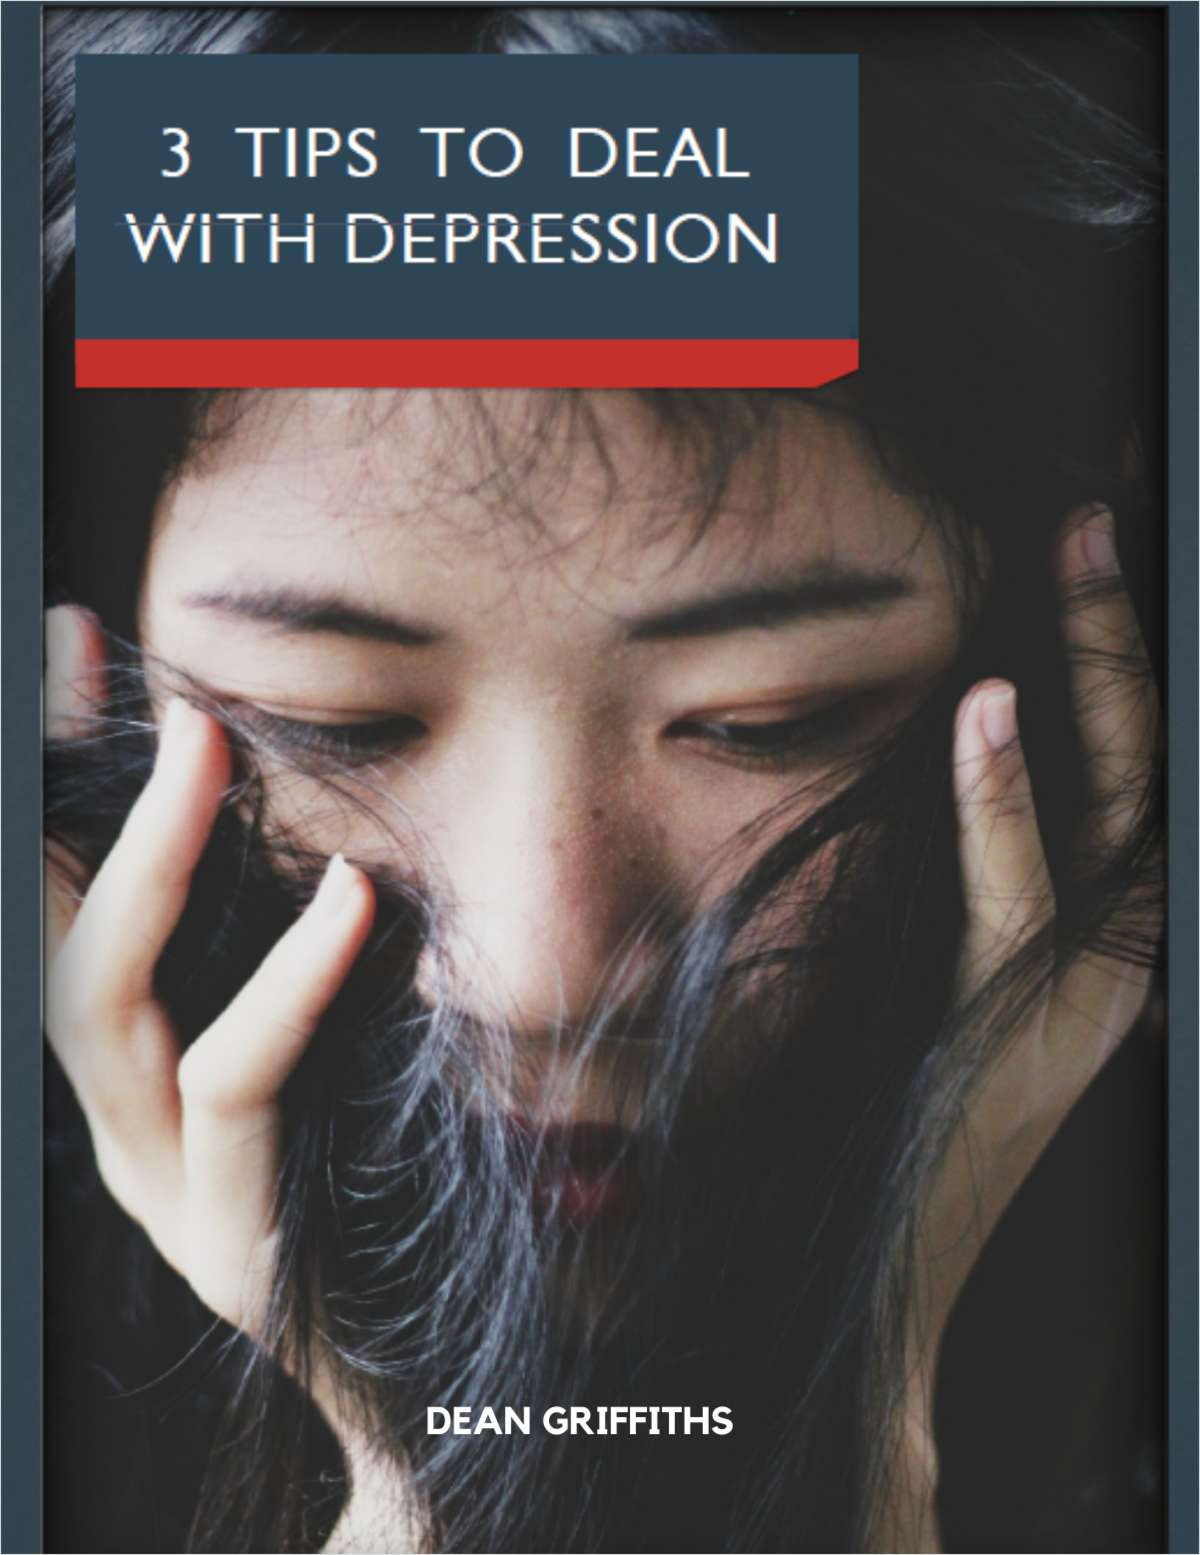 3 Tips to Deal with Depression